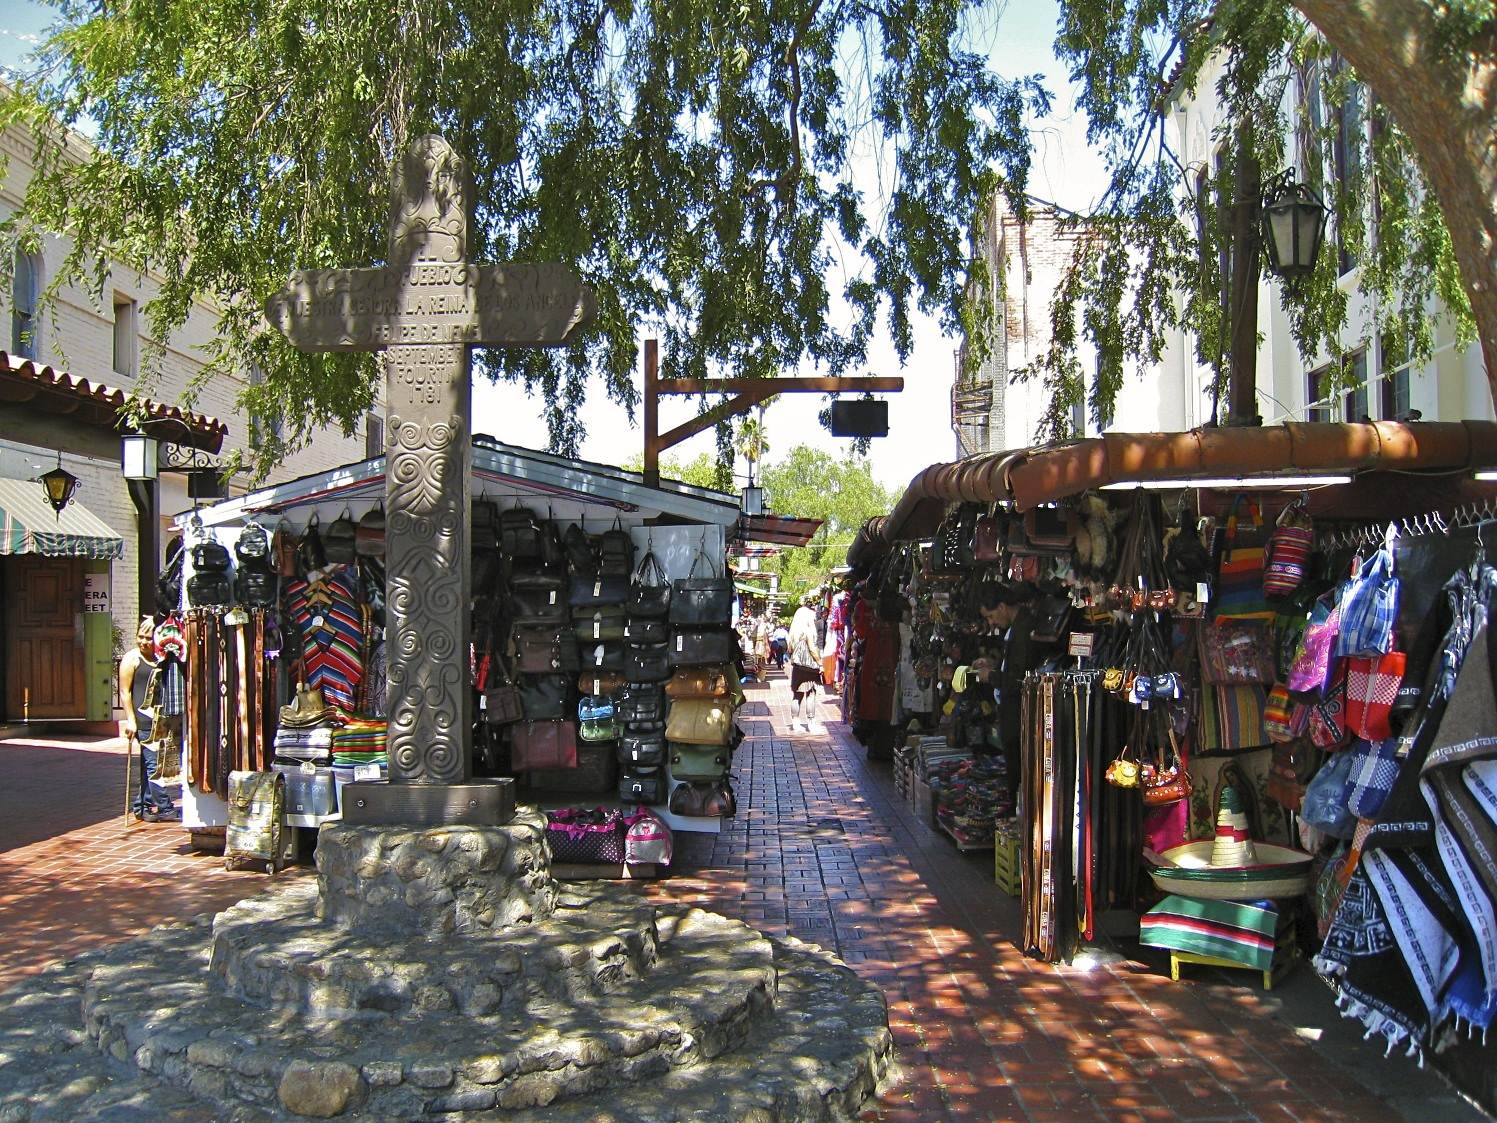 Olvera Street is the oldest street in LA.  I have memories of visiting here with the parents as a child and years later taking a gal who attended USC  I was dating here for authentic Mexican food...